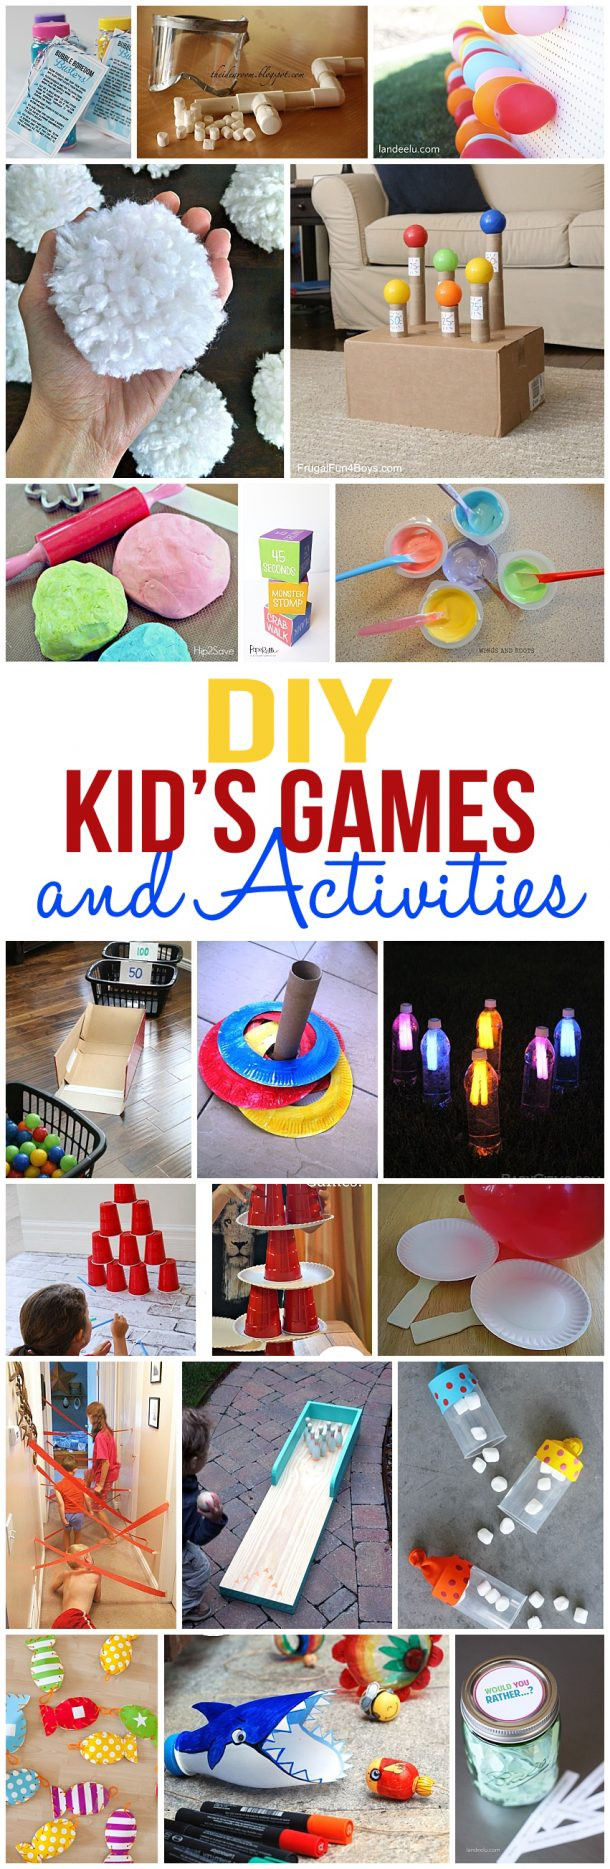 DIY Games For Toddlers  DIY Kids Games and Activities for Indoors or Outdoors